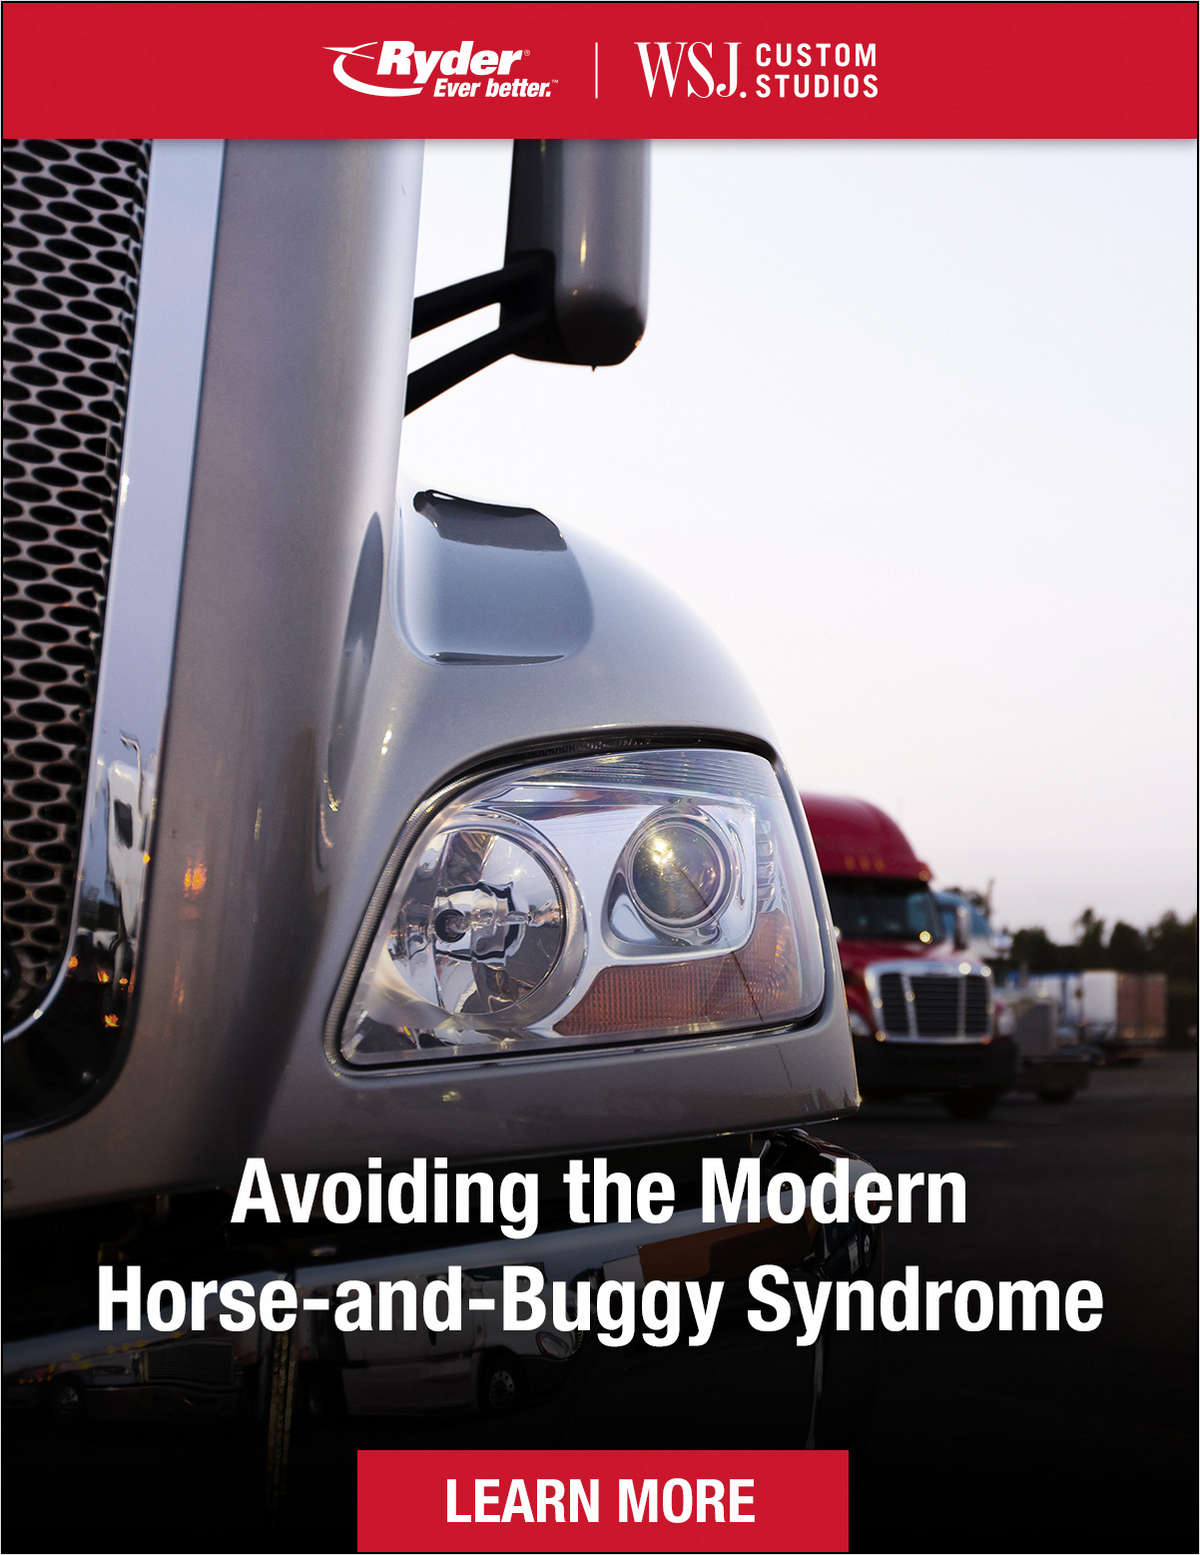 Avoiding the Modern Horse-and-Buggy Syndrome